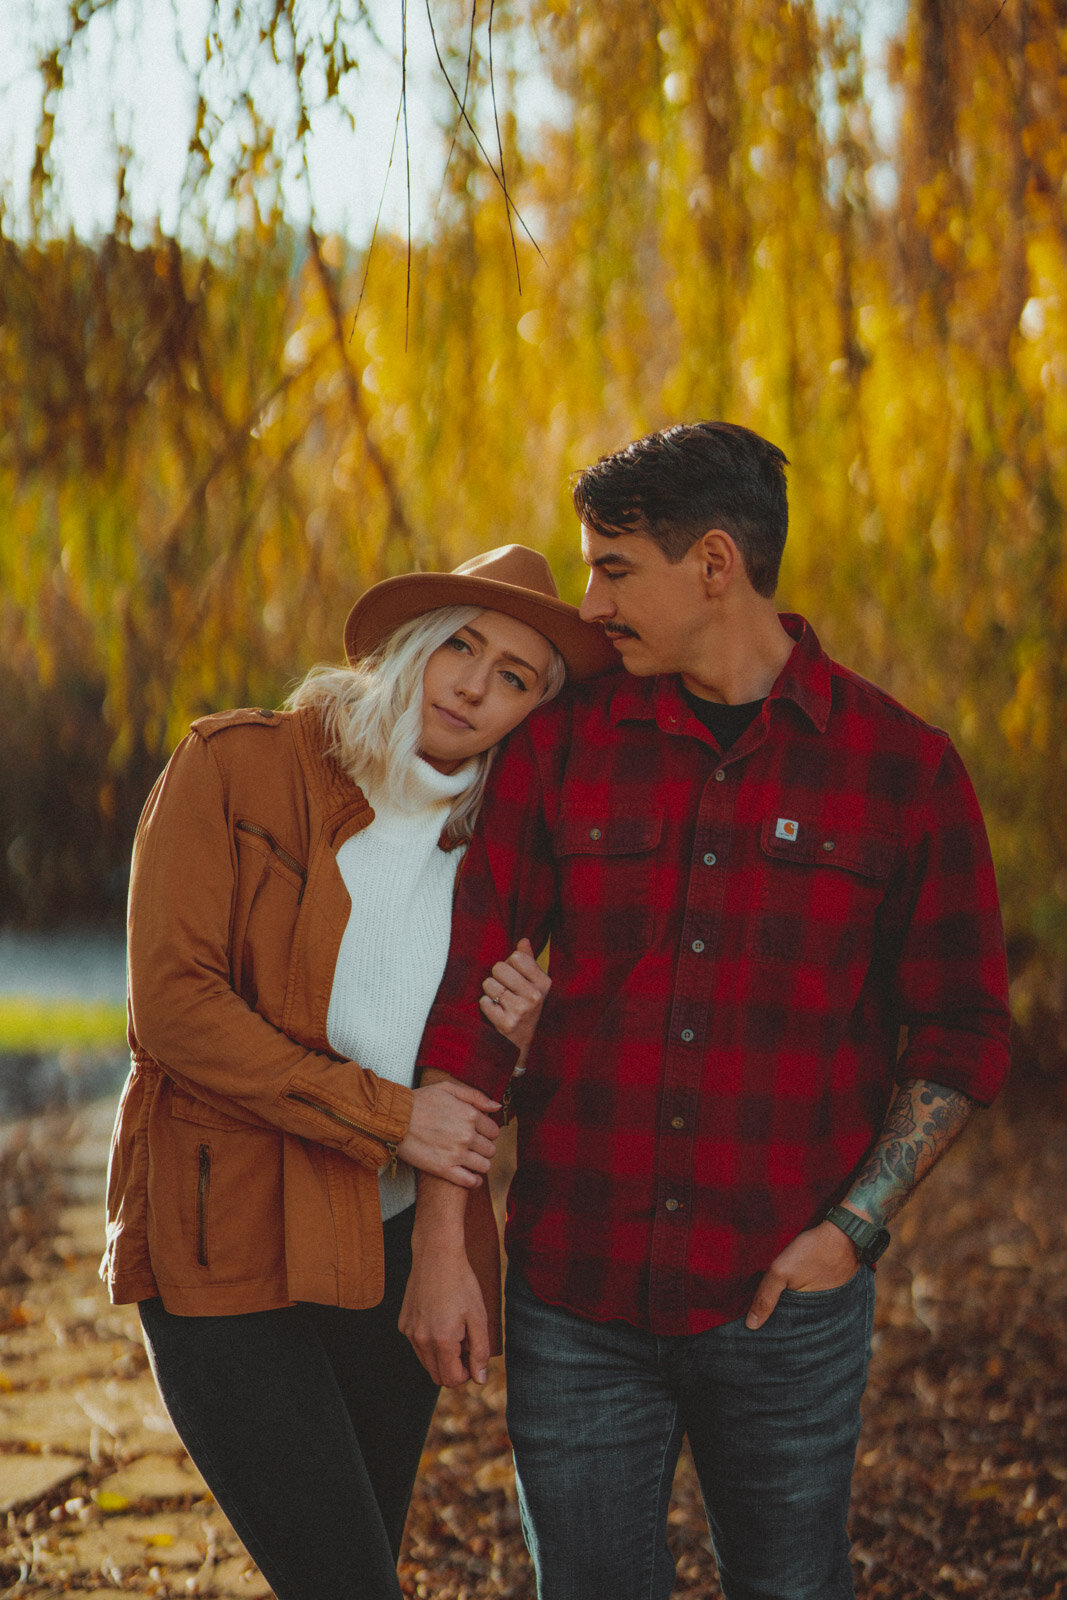 Seth-and-Gail-Engagement-Superia-Weddings-Michael-Inglima-2020-23